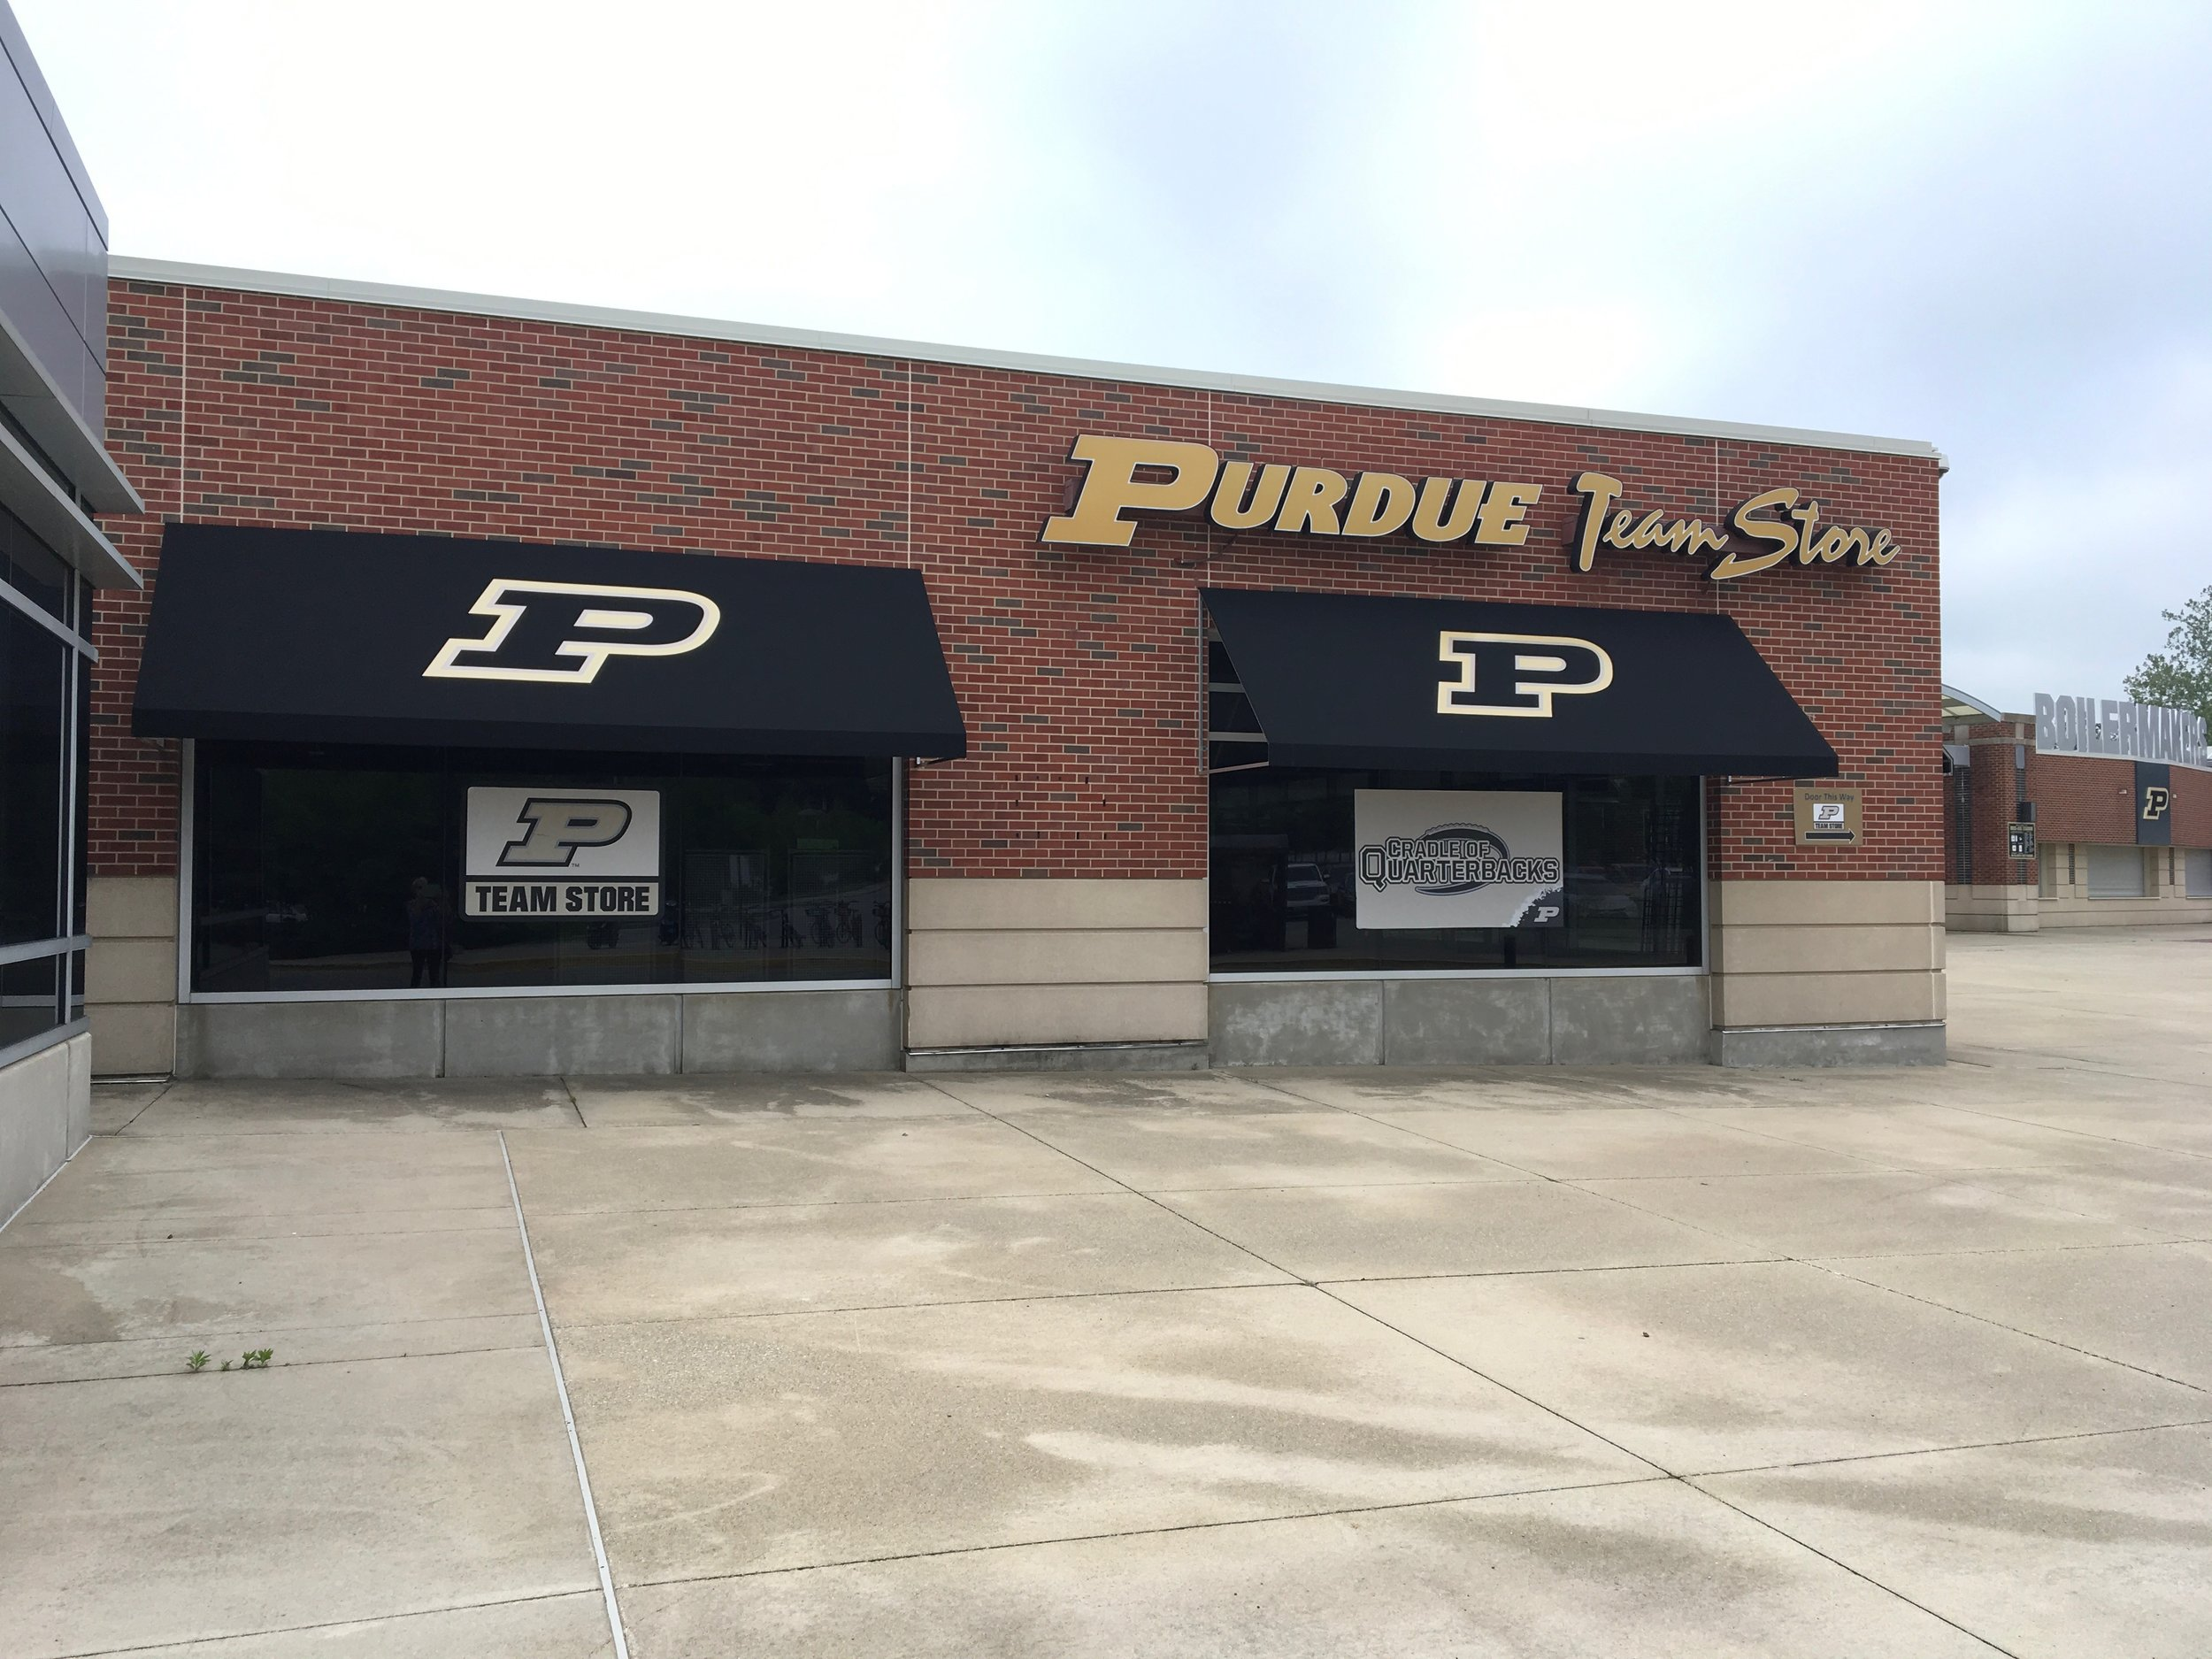 AFTER - Added awnings with Purdue's